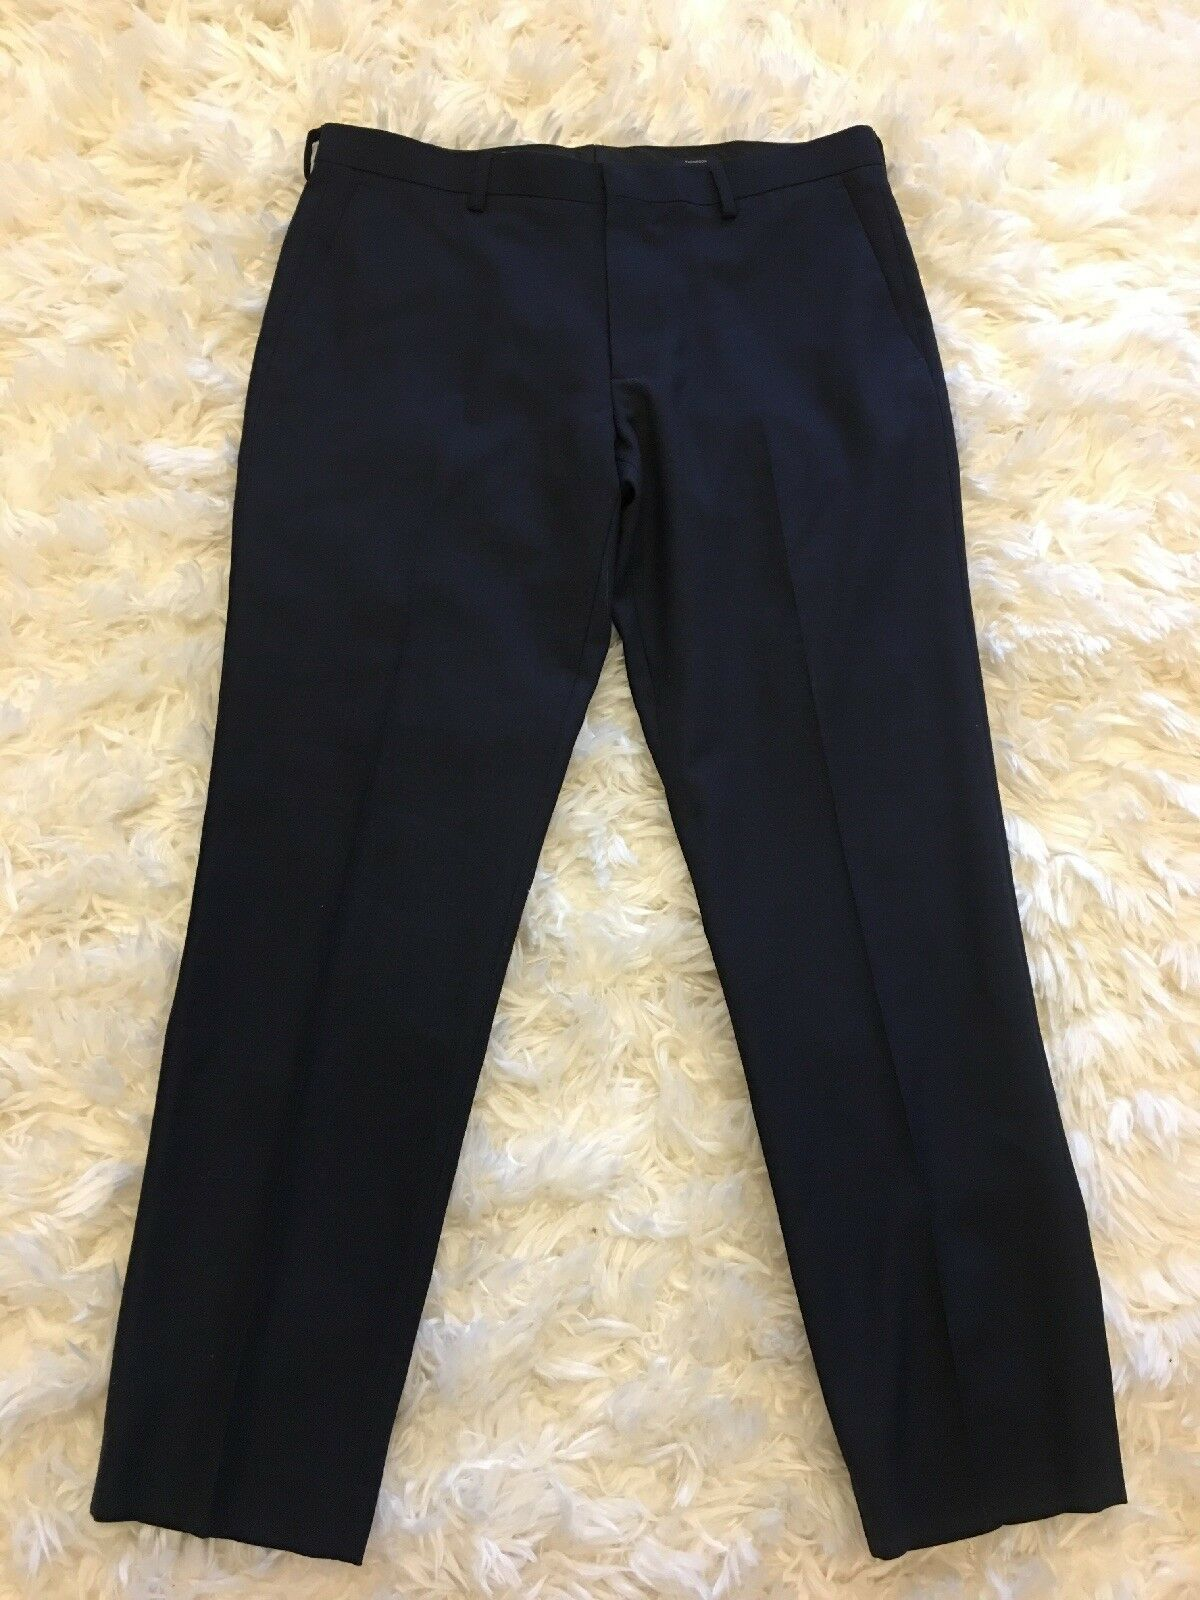 New J Crew Factory Slim-fit Thompson Suit Pant  Voyager Wool Navy Sz 34 30 G6754